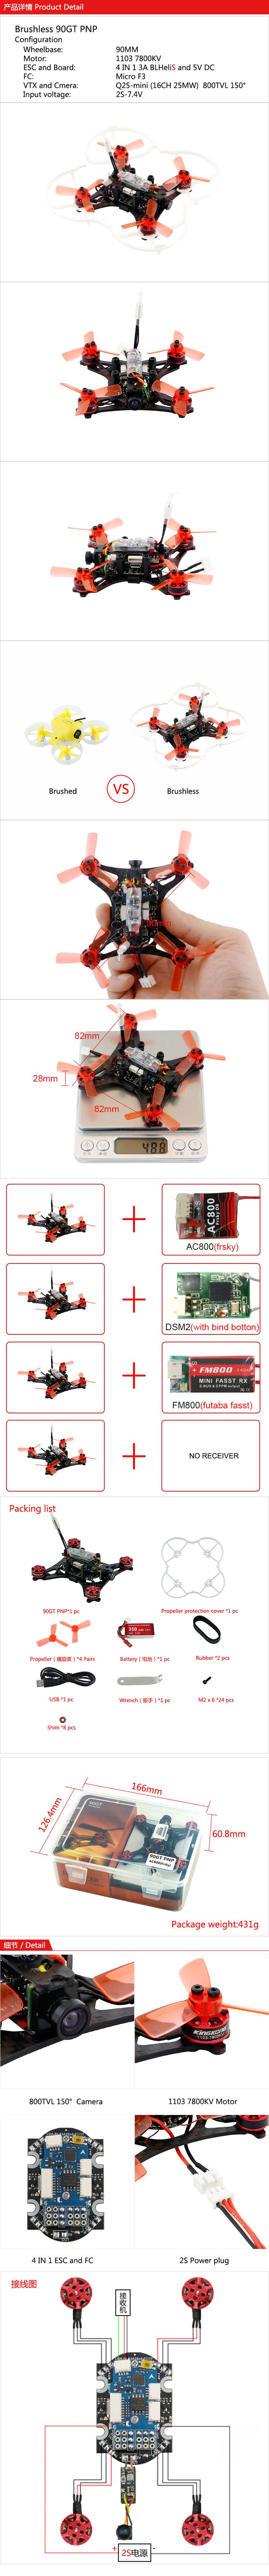 90TGT FPV Racing RC Drone with FM800(FASST) Receiver Micro F3 Flight Control 1103 7800KV Brushless Motor 16CH 25mW 600TVL Camera BLheili_S 6A ESC Support Dshot150